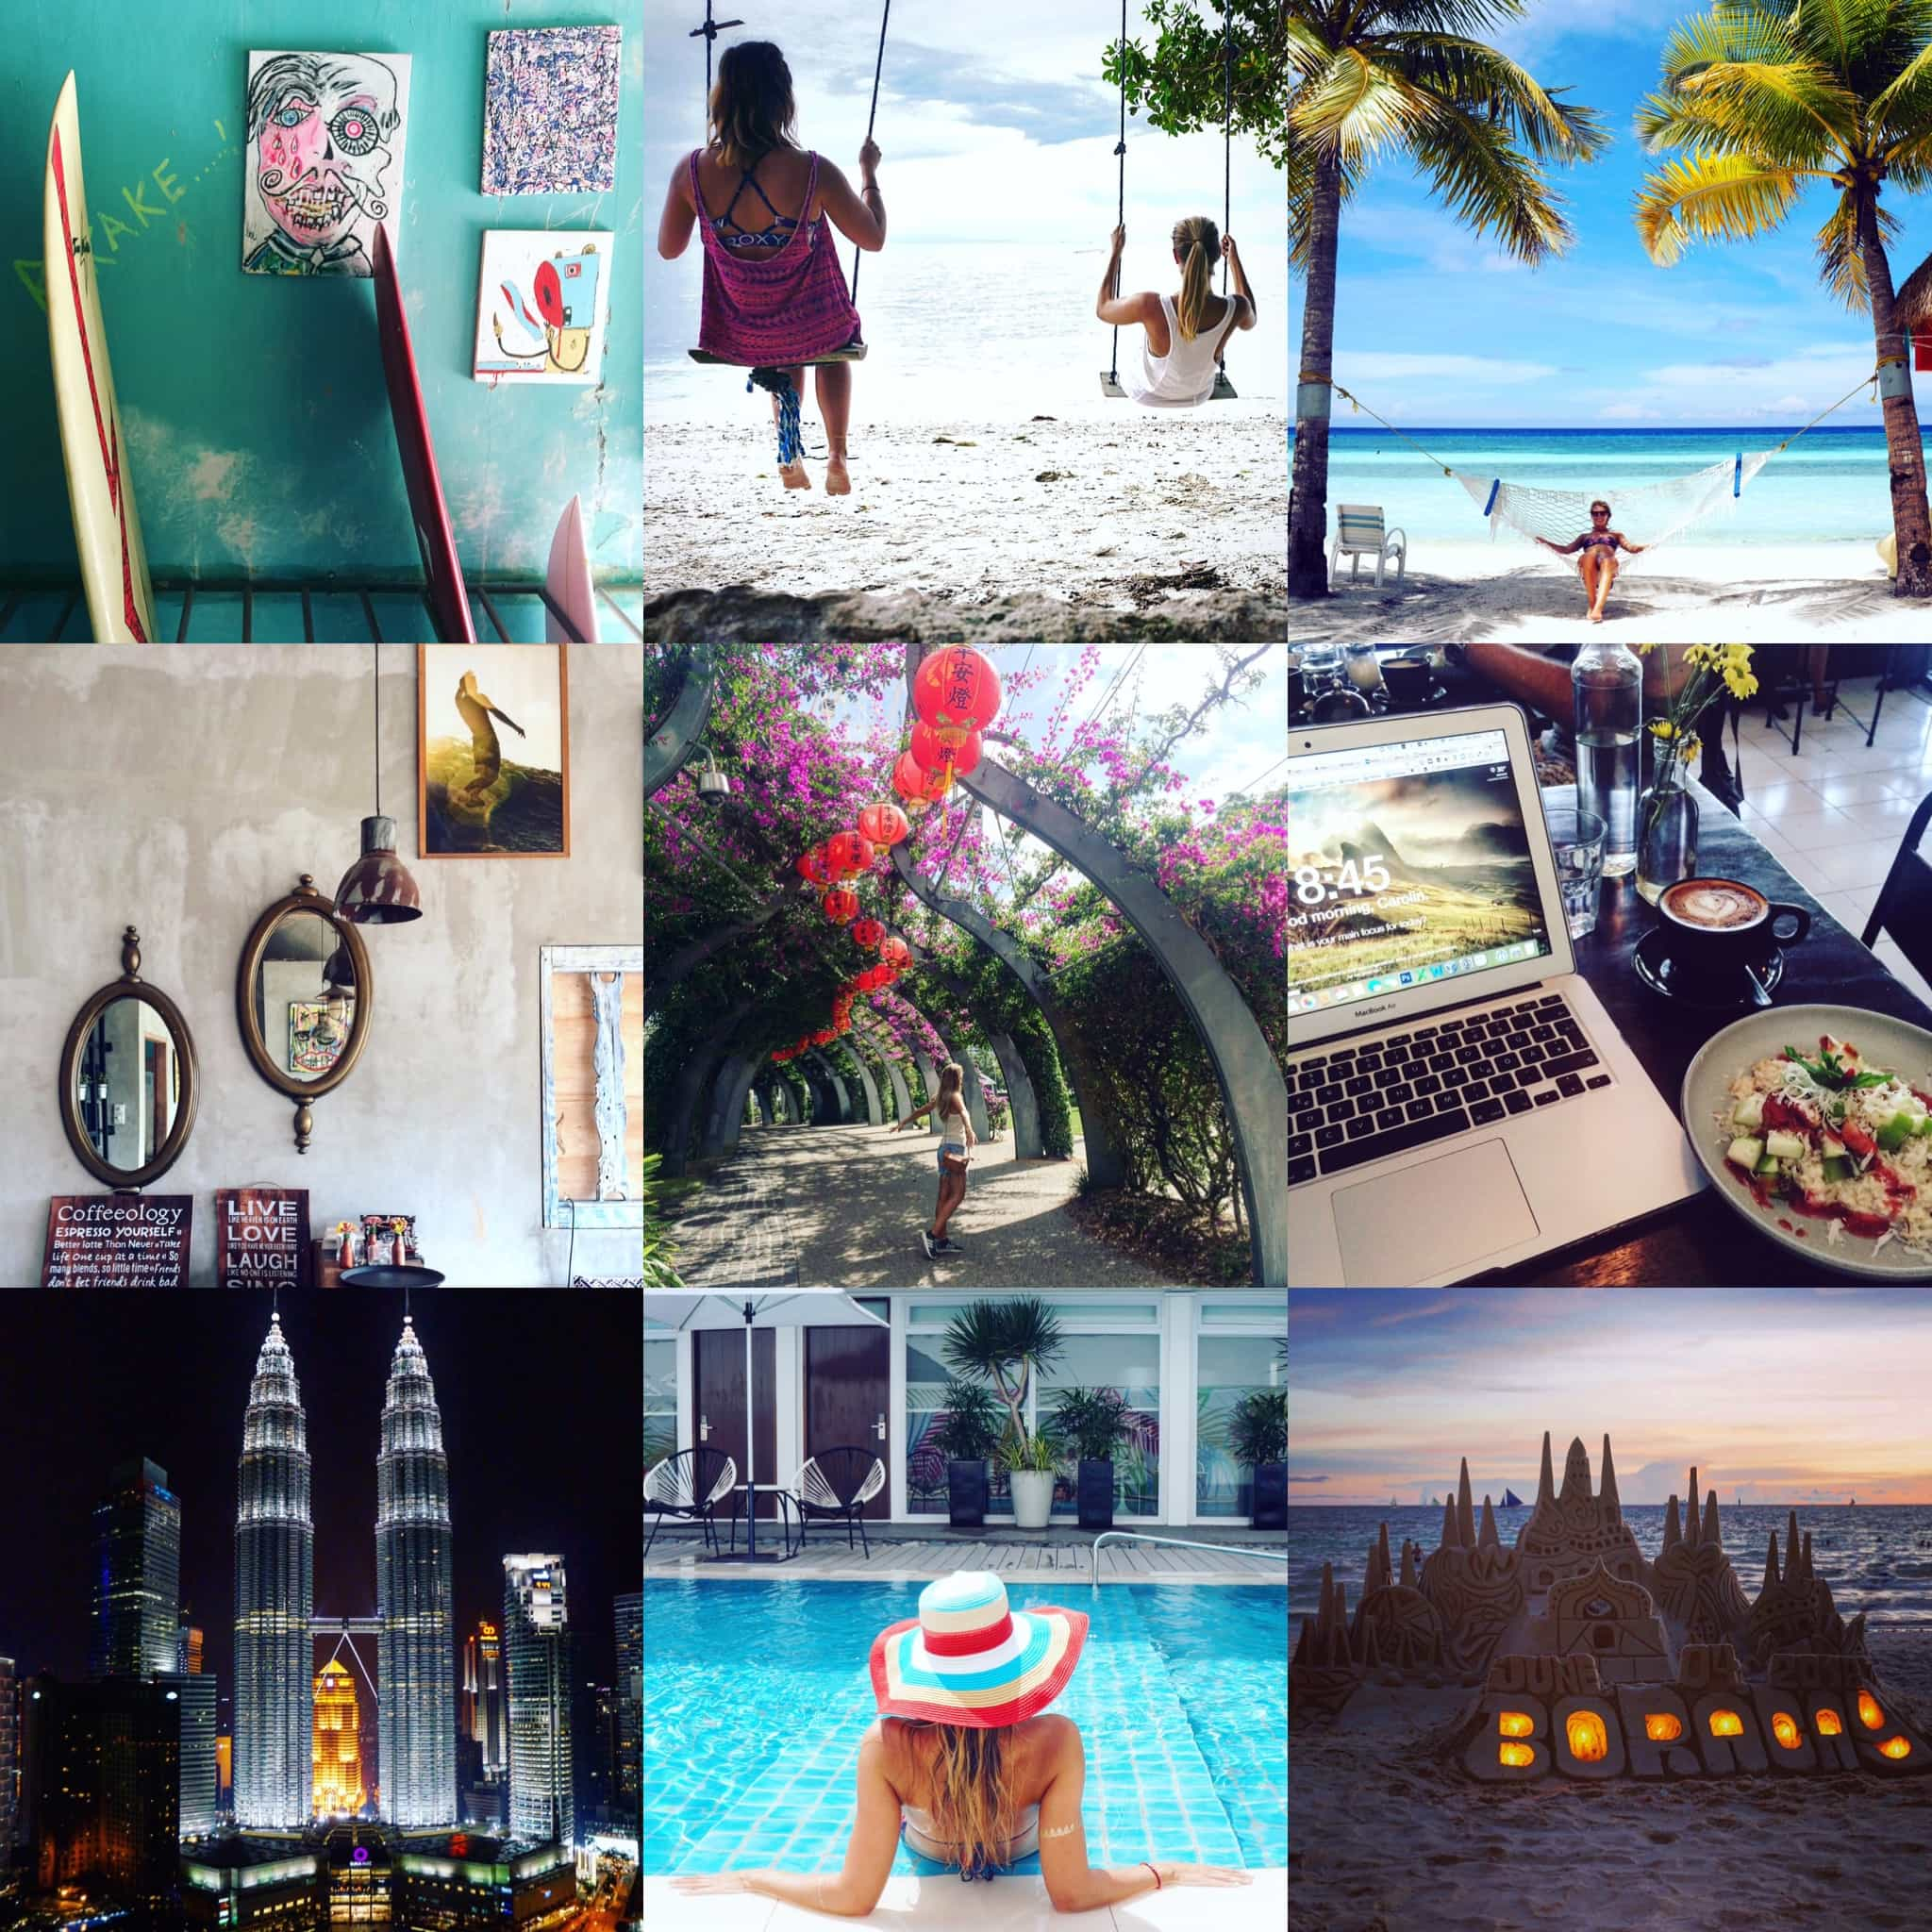 35b1d3693f Instagram Hashtag Research Like A Pro - Breathing Travel